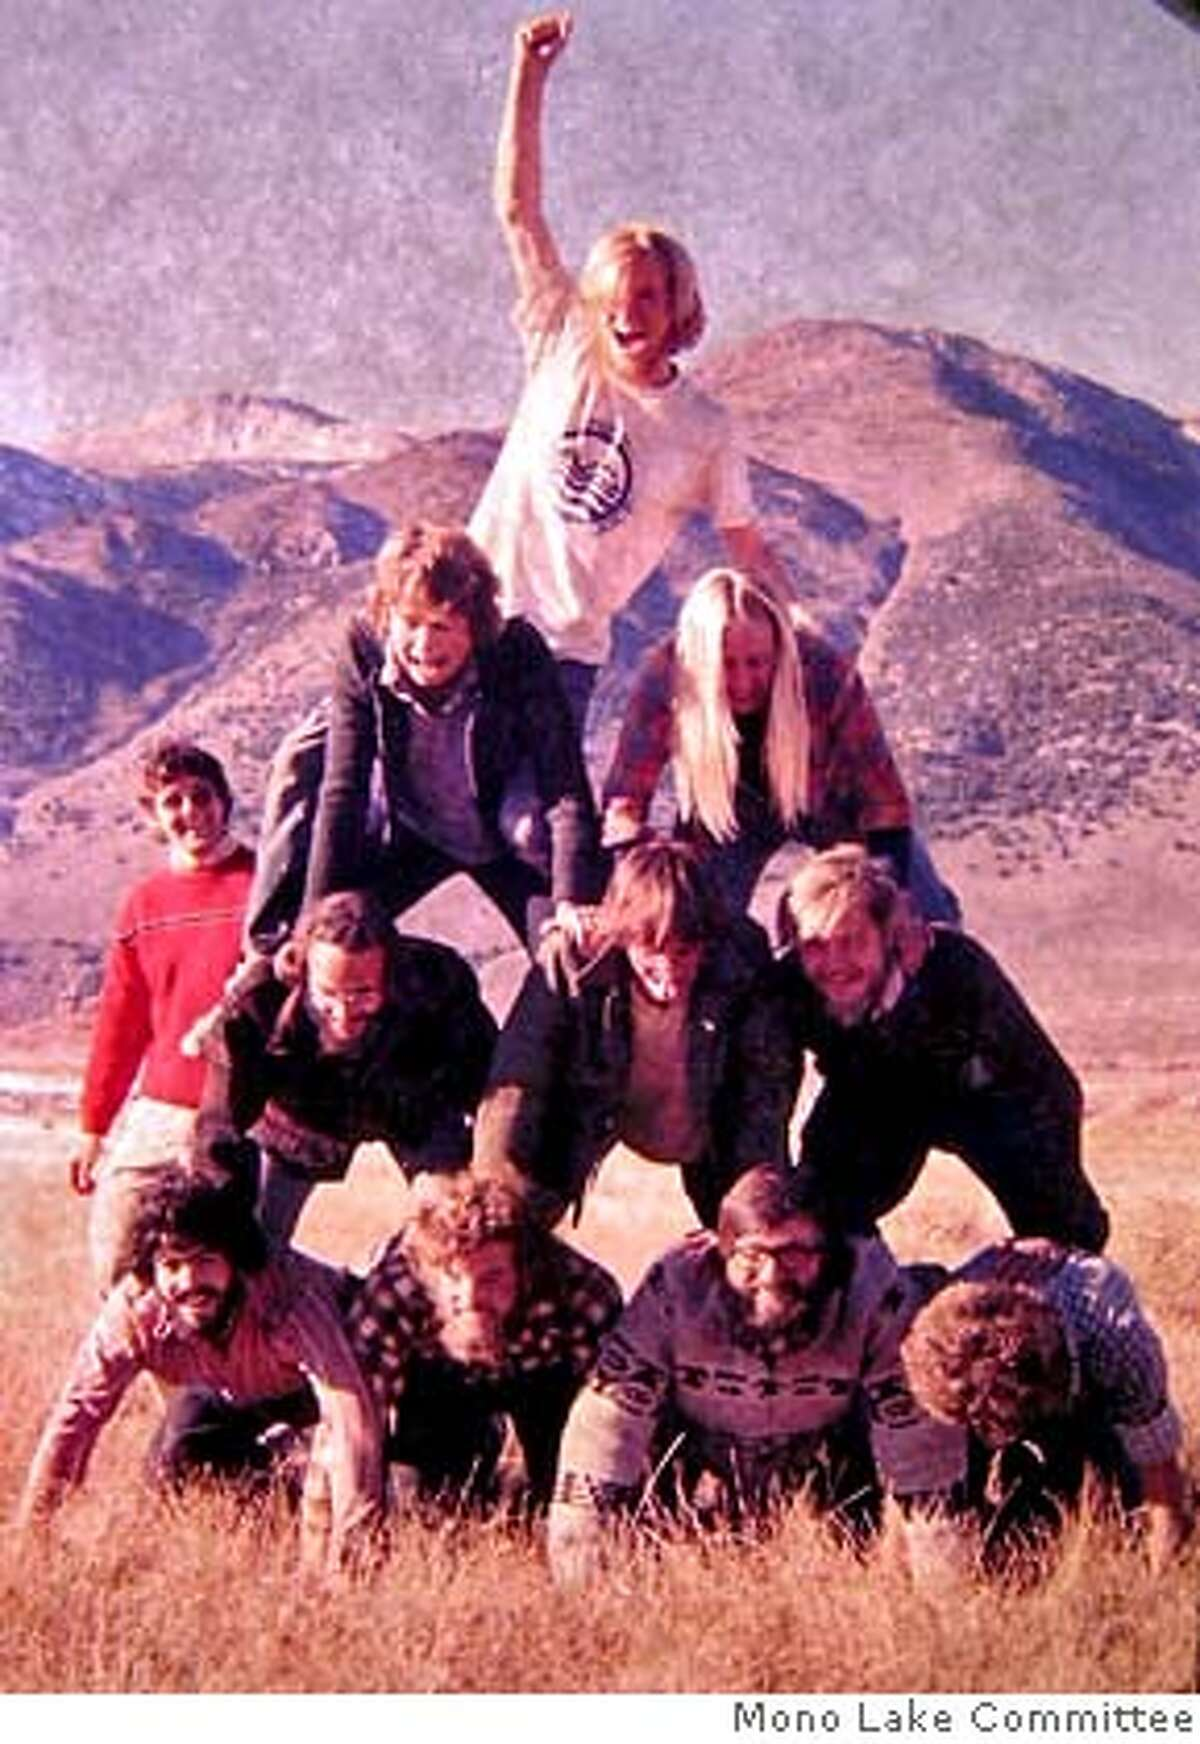 1976 Mono Lake - Thirty years ago, a group of college student researchers preserved their images at a Mono Lake campsite. At the top is Elliot Burch. Second row, left to right, are Christine Weigen and Gayle Dana, Third Row, Tom Wainwright, visitor Bill Syme and Brett Engstrom. Bottom row, Bob Loeffler, Jefferson Burch, David Winkler and David Herbst. Jeff Robins is standing at left. Photo Credit: David Gaines